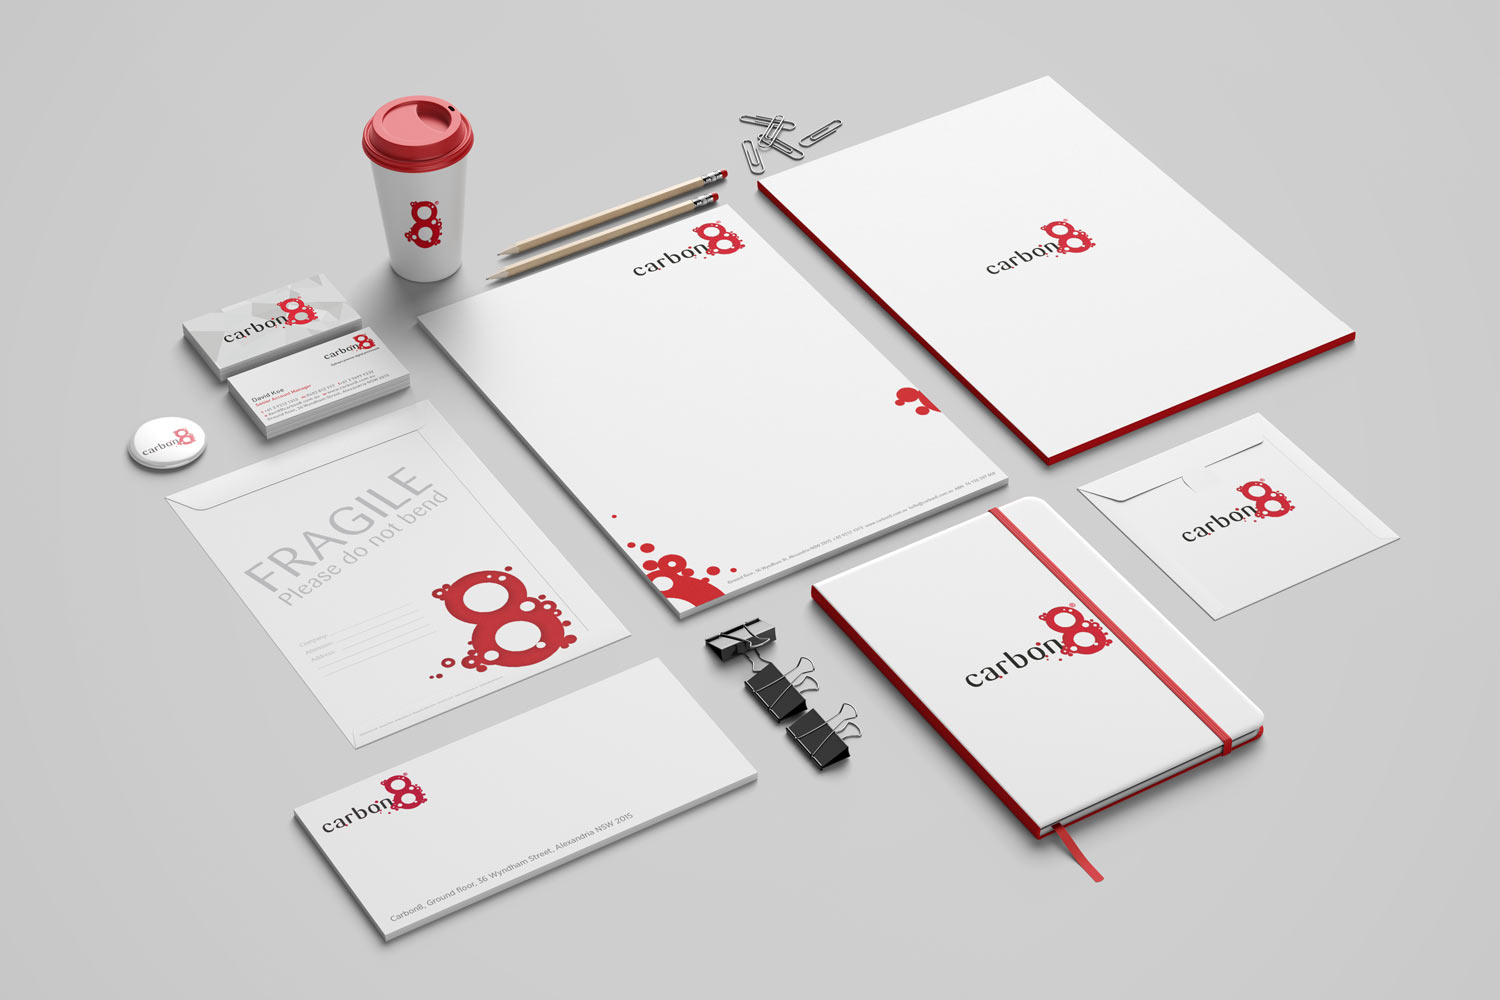 Carbon8_stationery.jpg